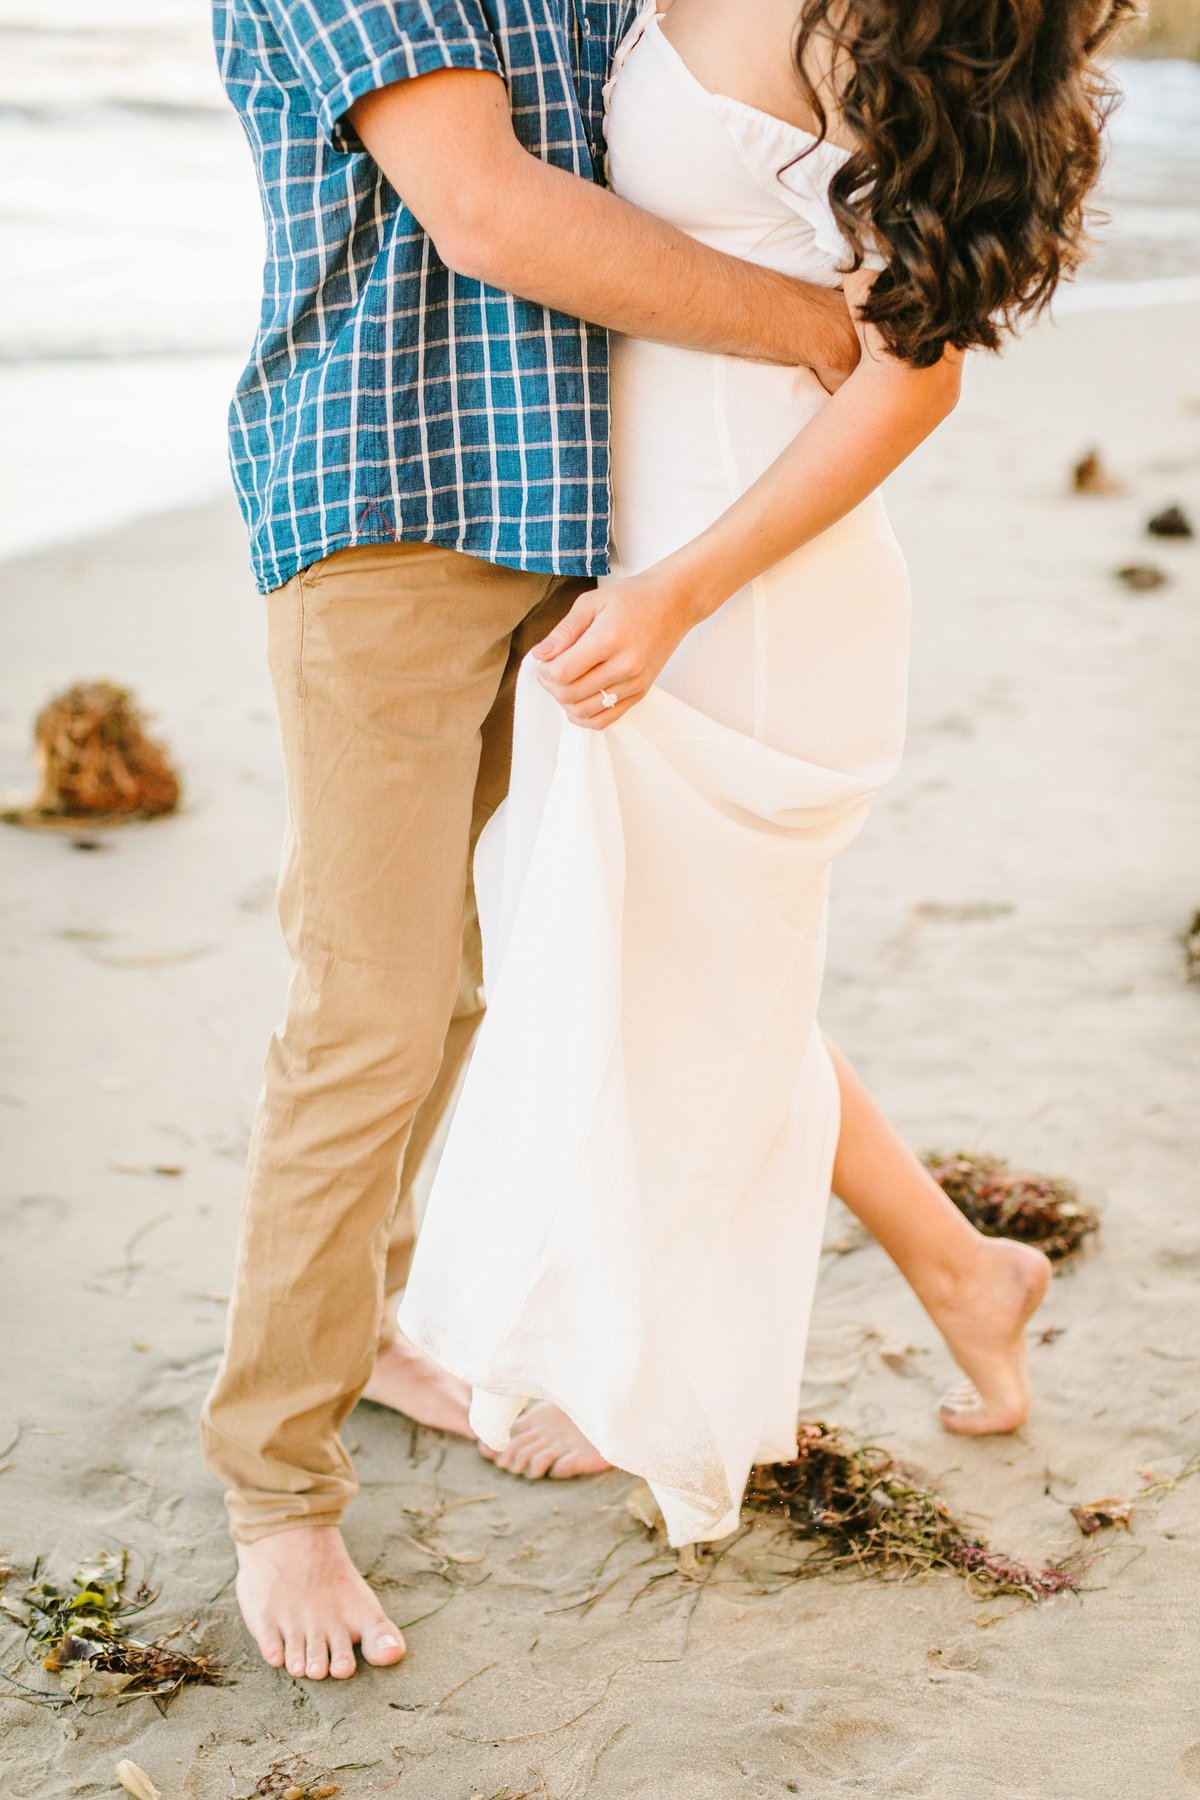 Best California Engagement Photographer_Jodee Debes Photography_182